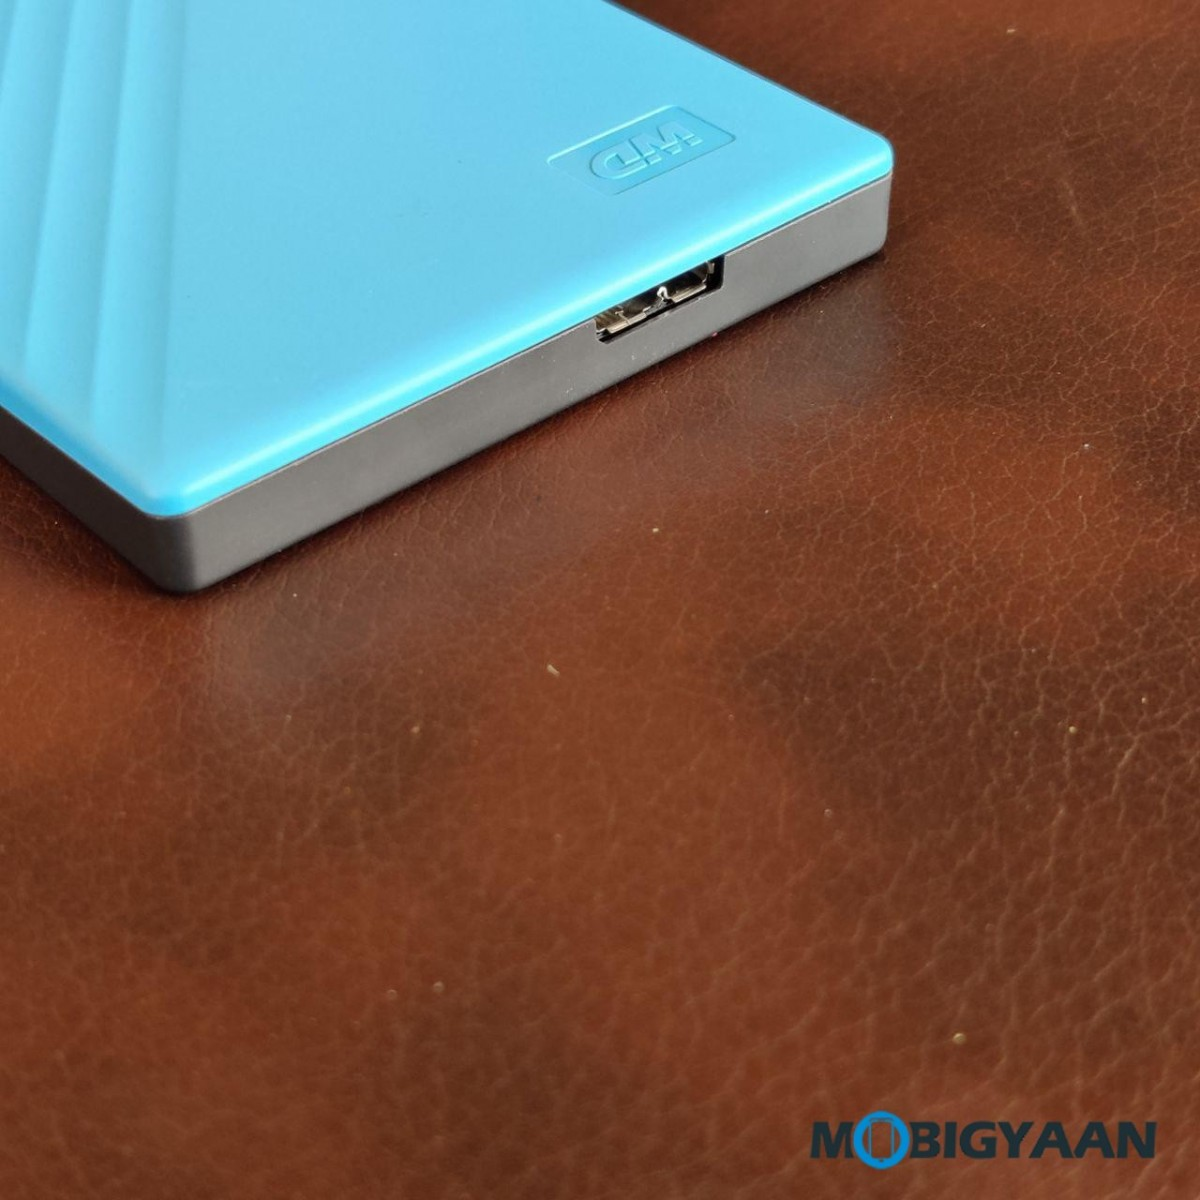 WD-My-Passport-Drive-Hands-On-Images-1